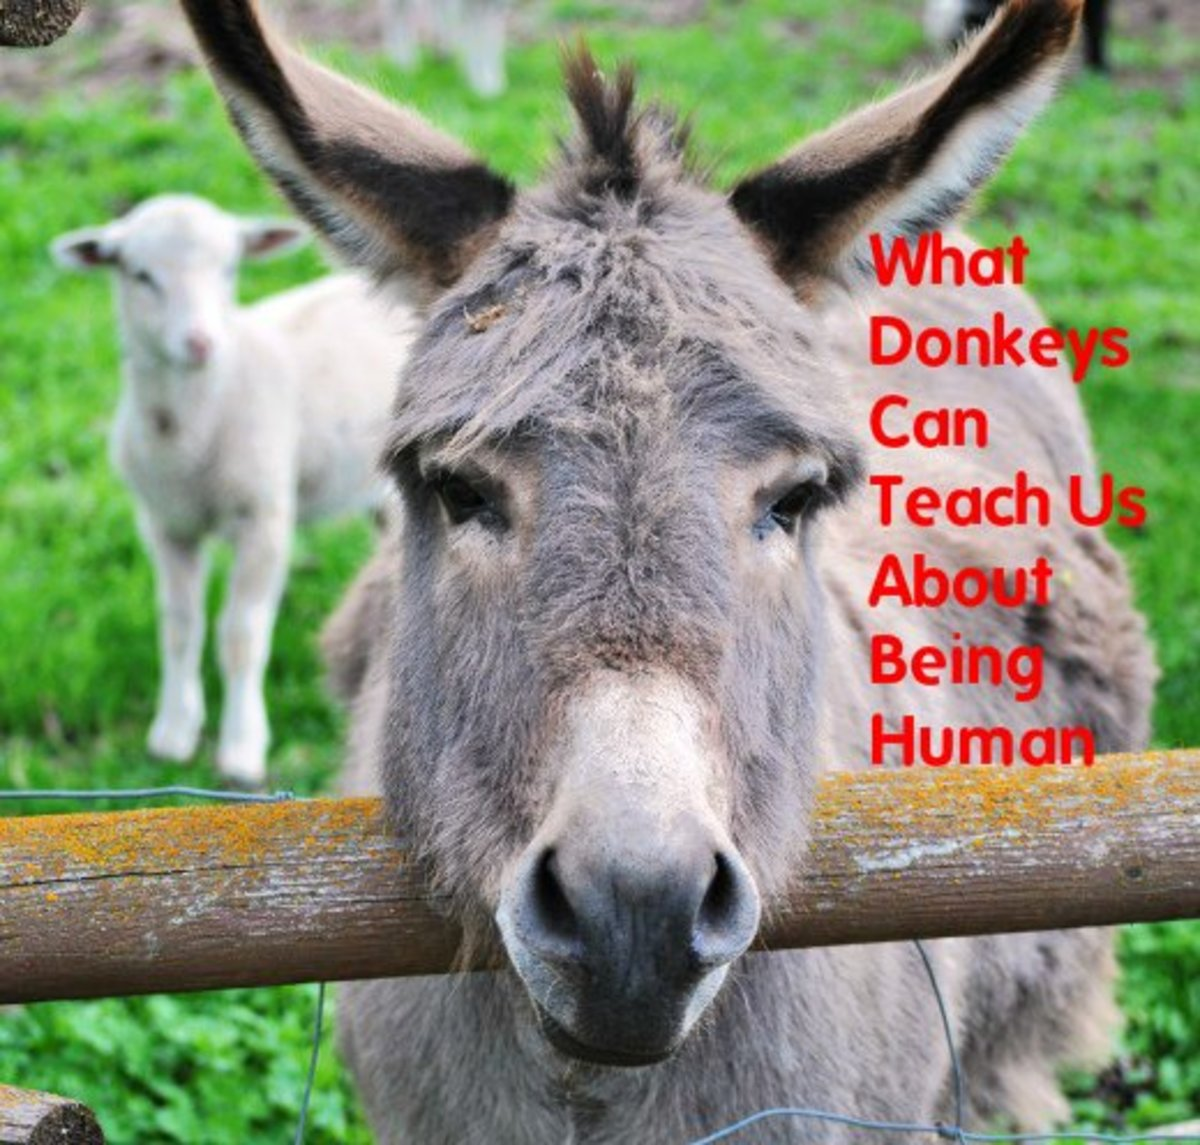 Donkeys develop strong attachments to humans and other animals and live an average of 40 years.  Full of character, they are different from horses emotionally, physically, and socially.  Let them teach you some life lessons.